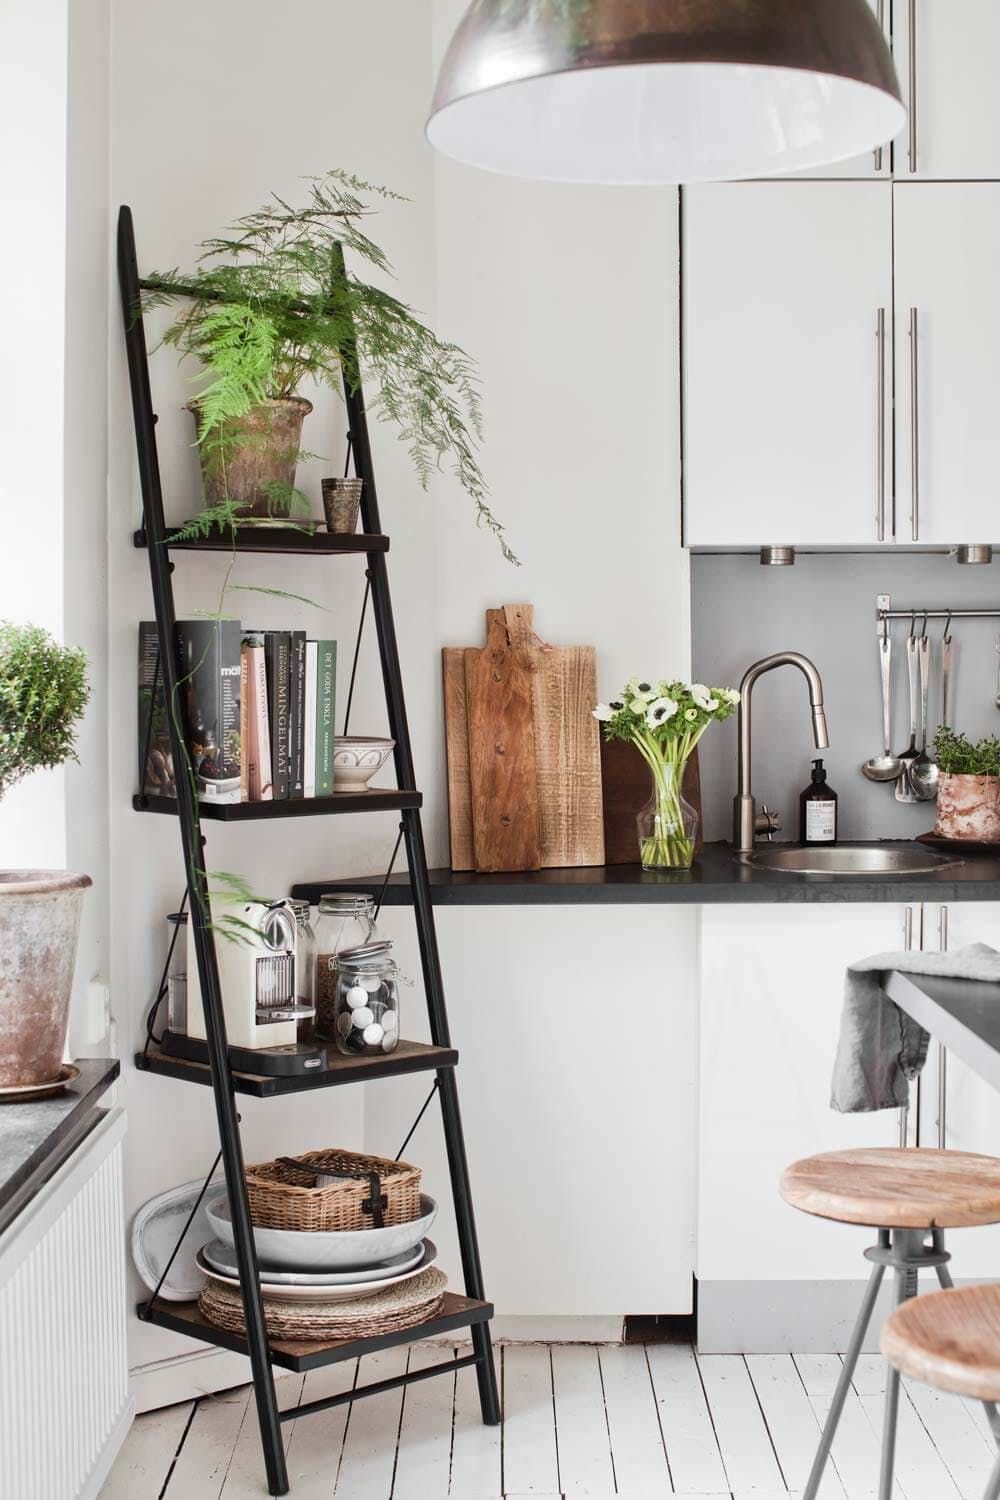 decorating kitchens oxo kitchen black holes the 7 most easily forgotten spots ets